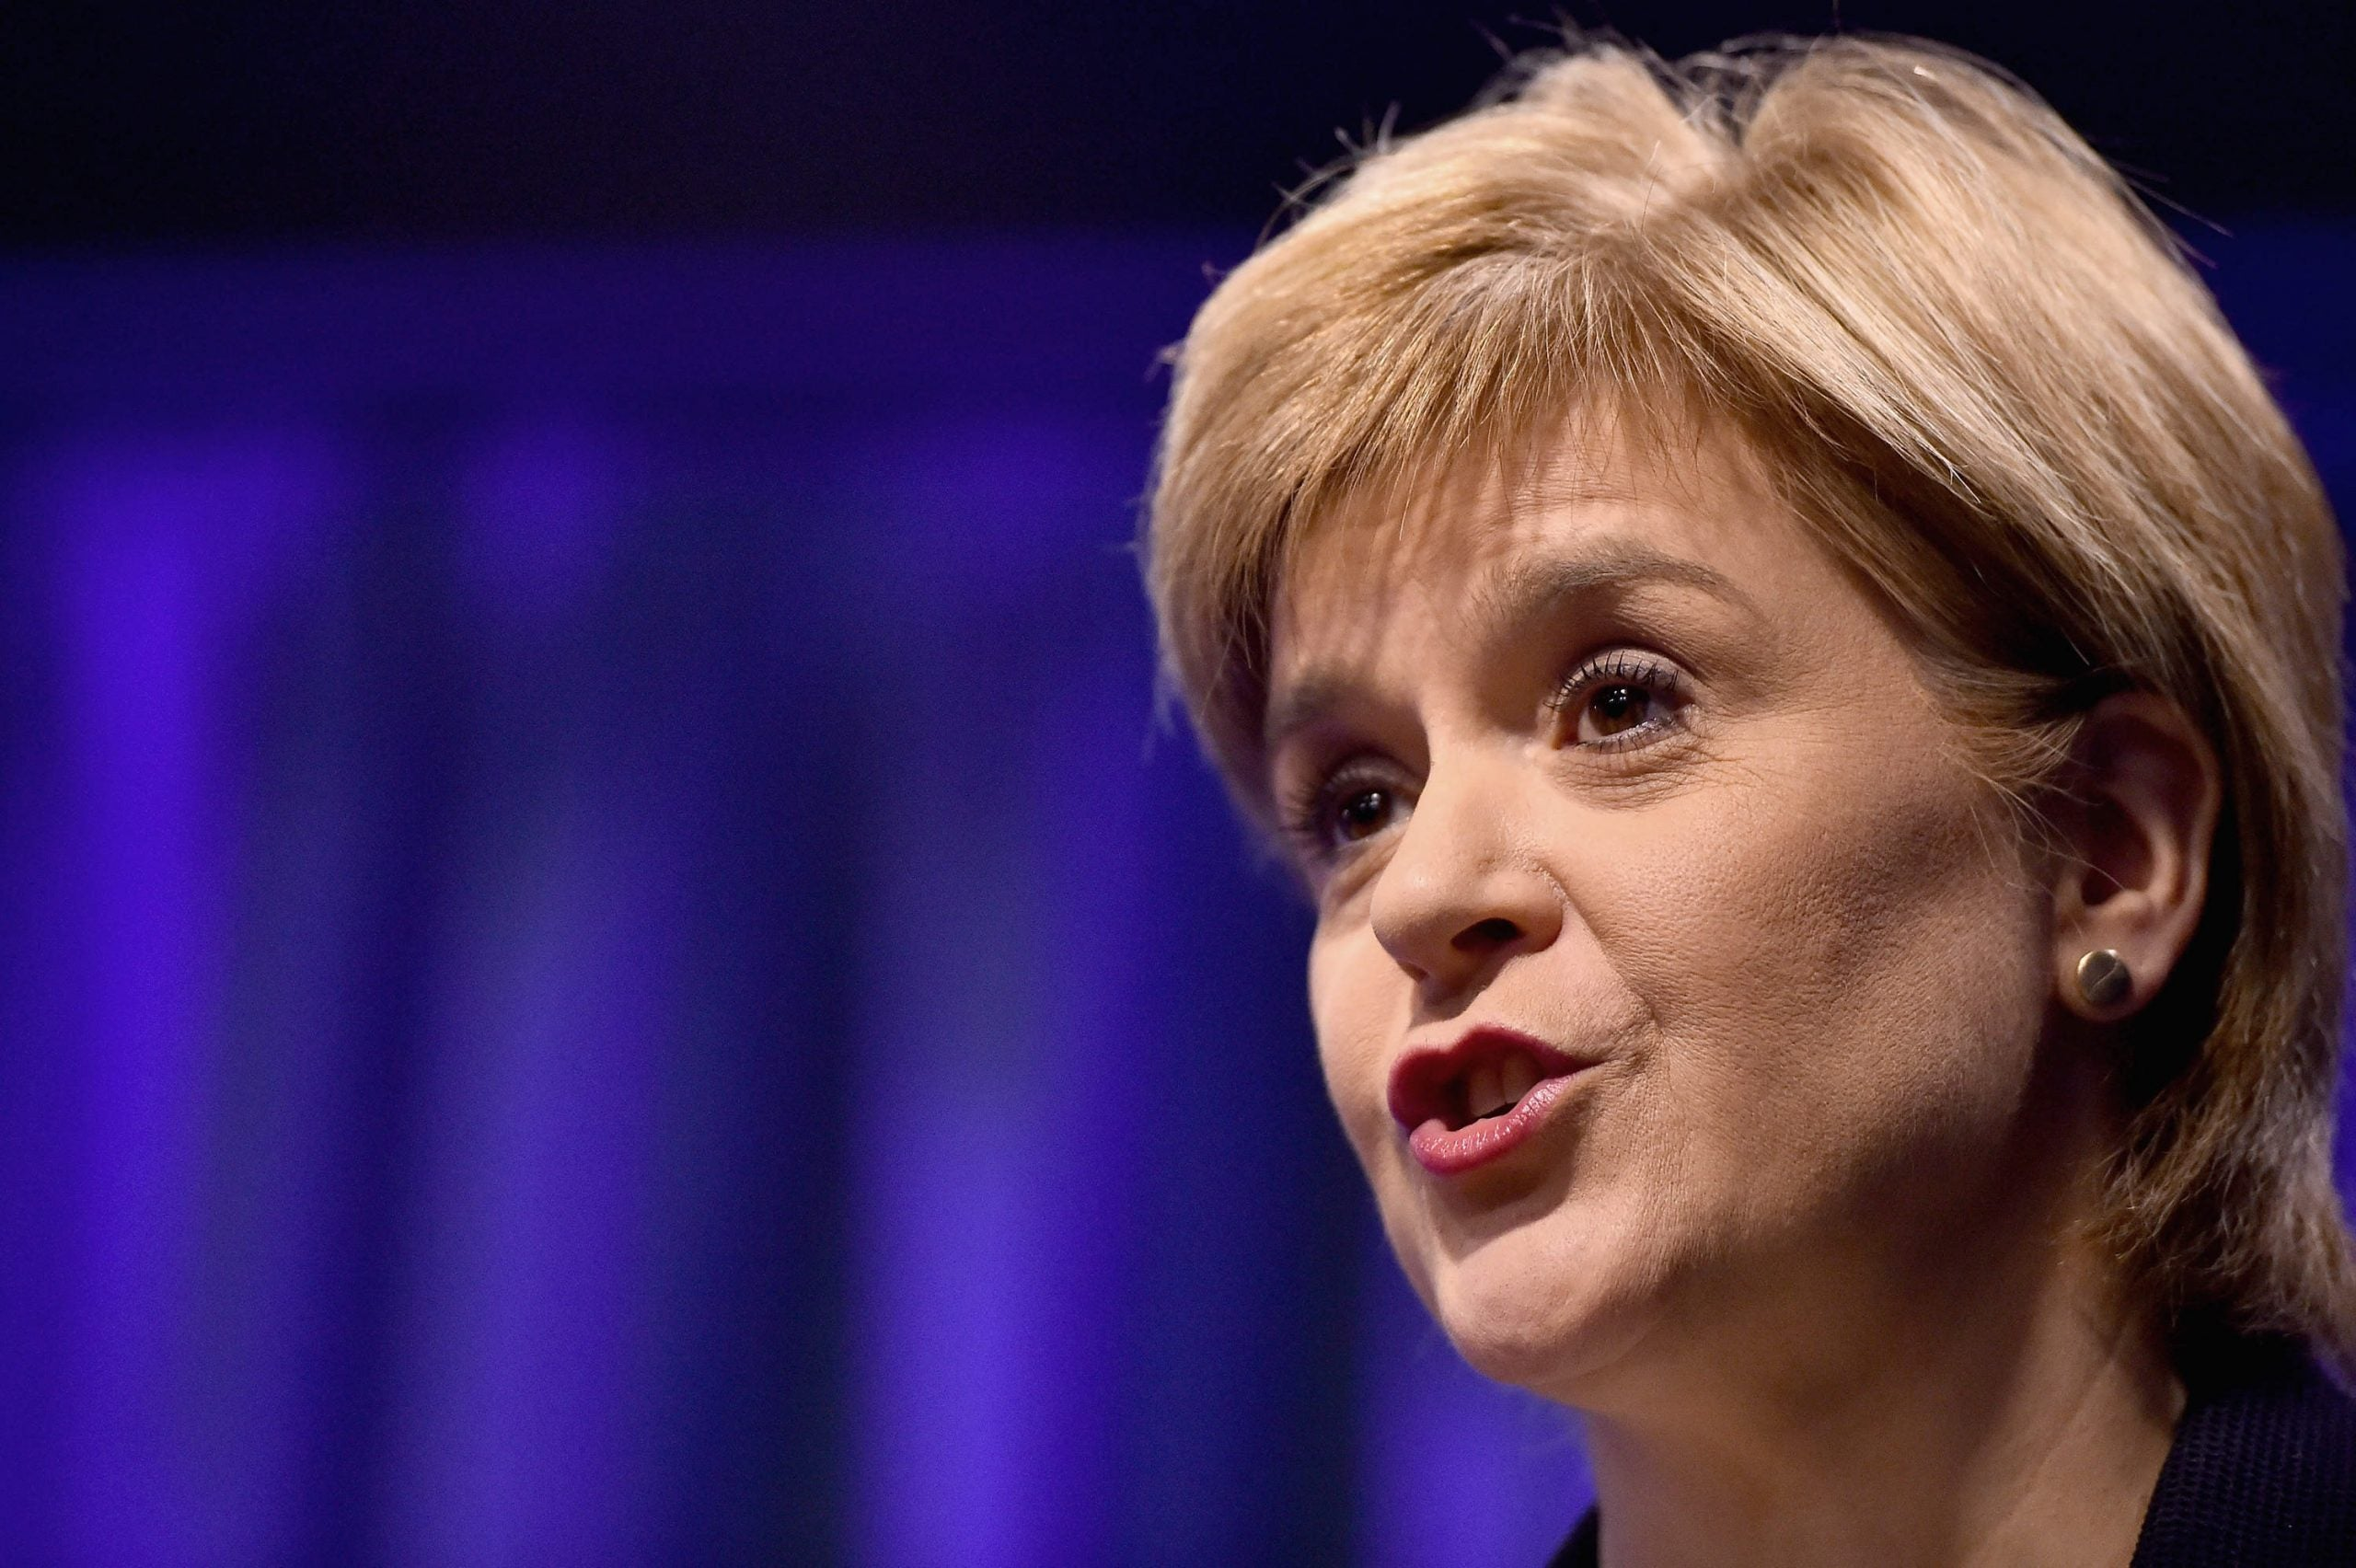 The personal and political: Nicola Sturgeon speaking about her miscarriage is a radical new step